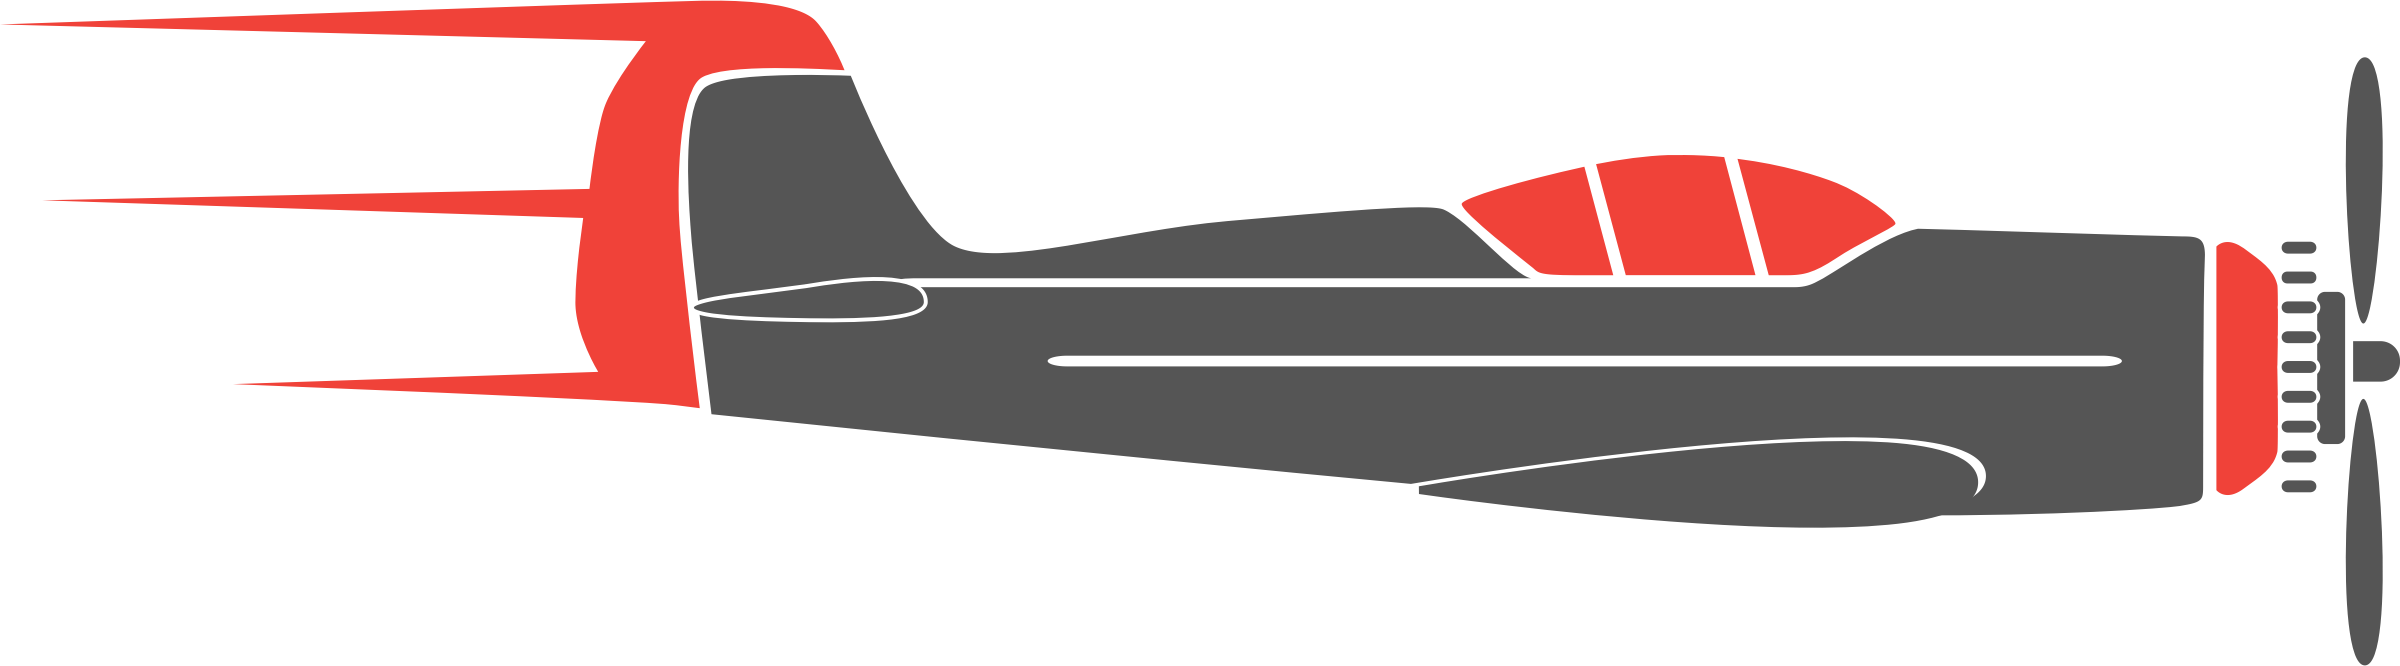 Plane banner png. Airplane flugzeug icons free